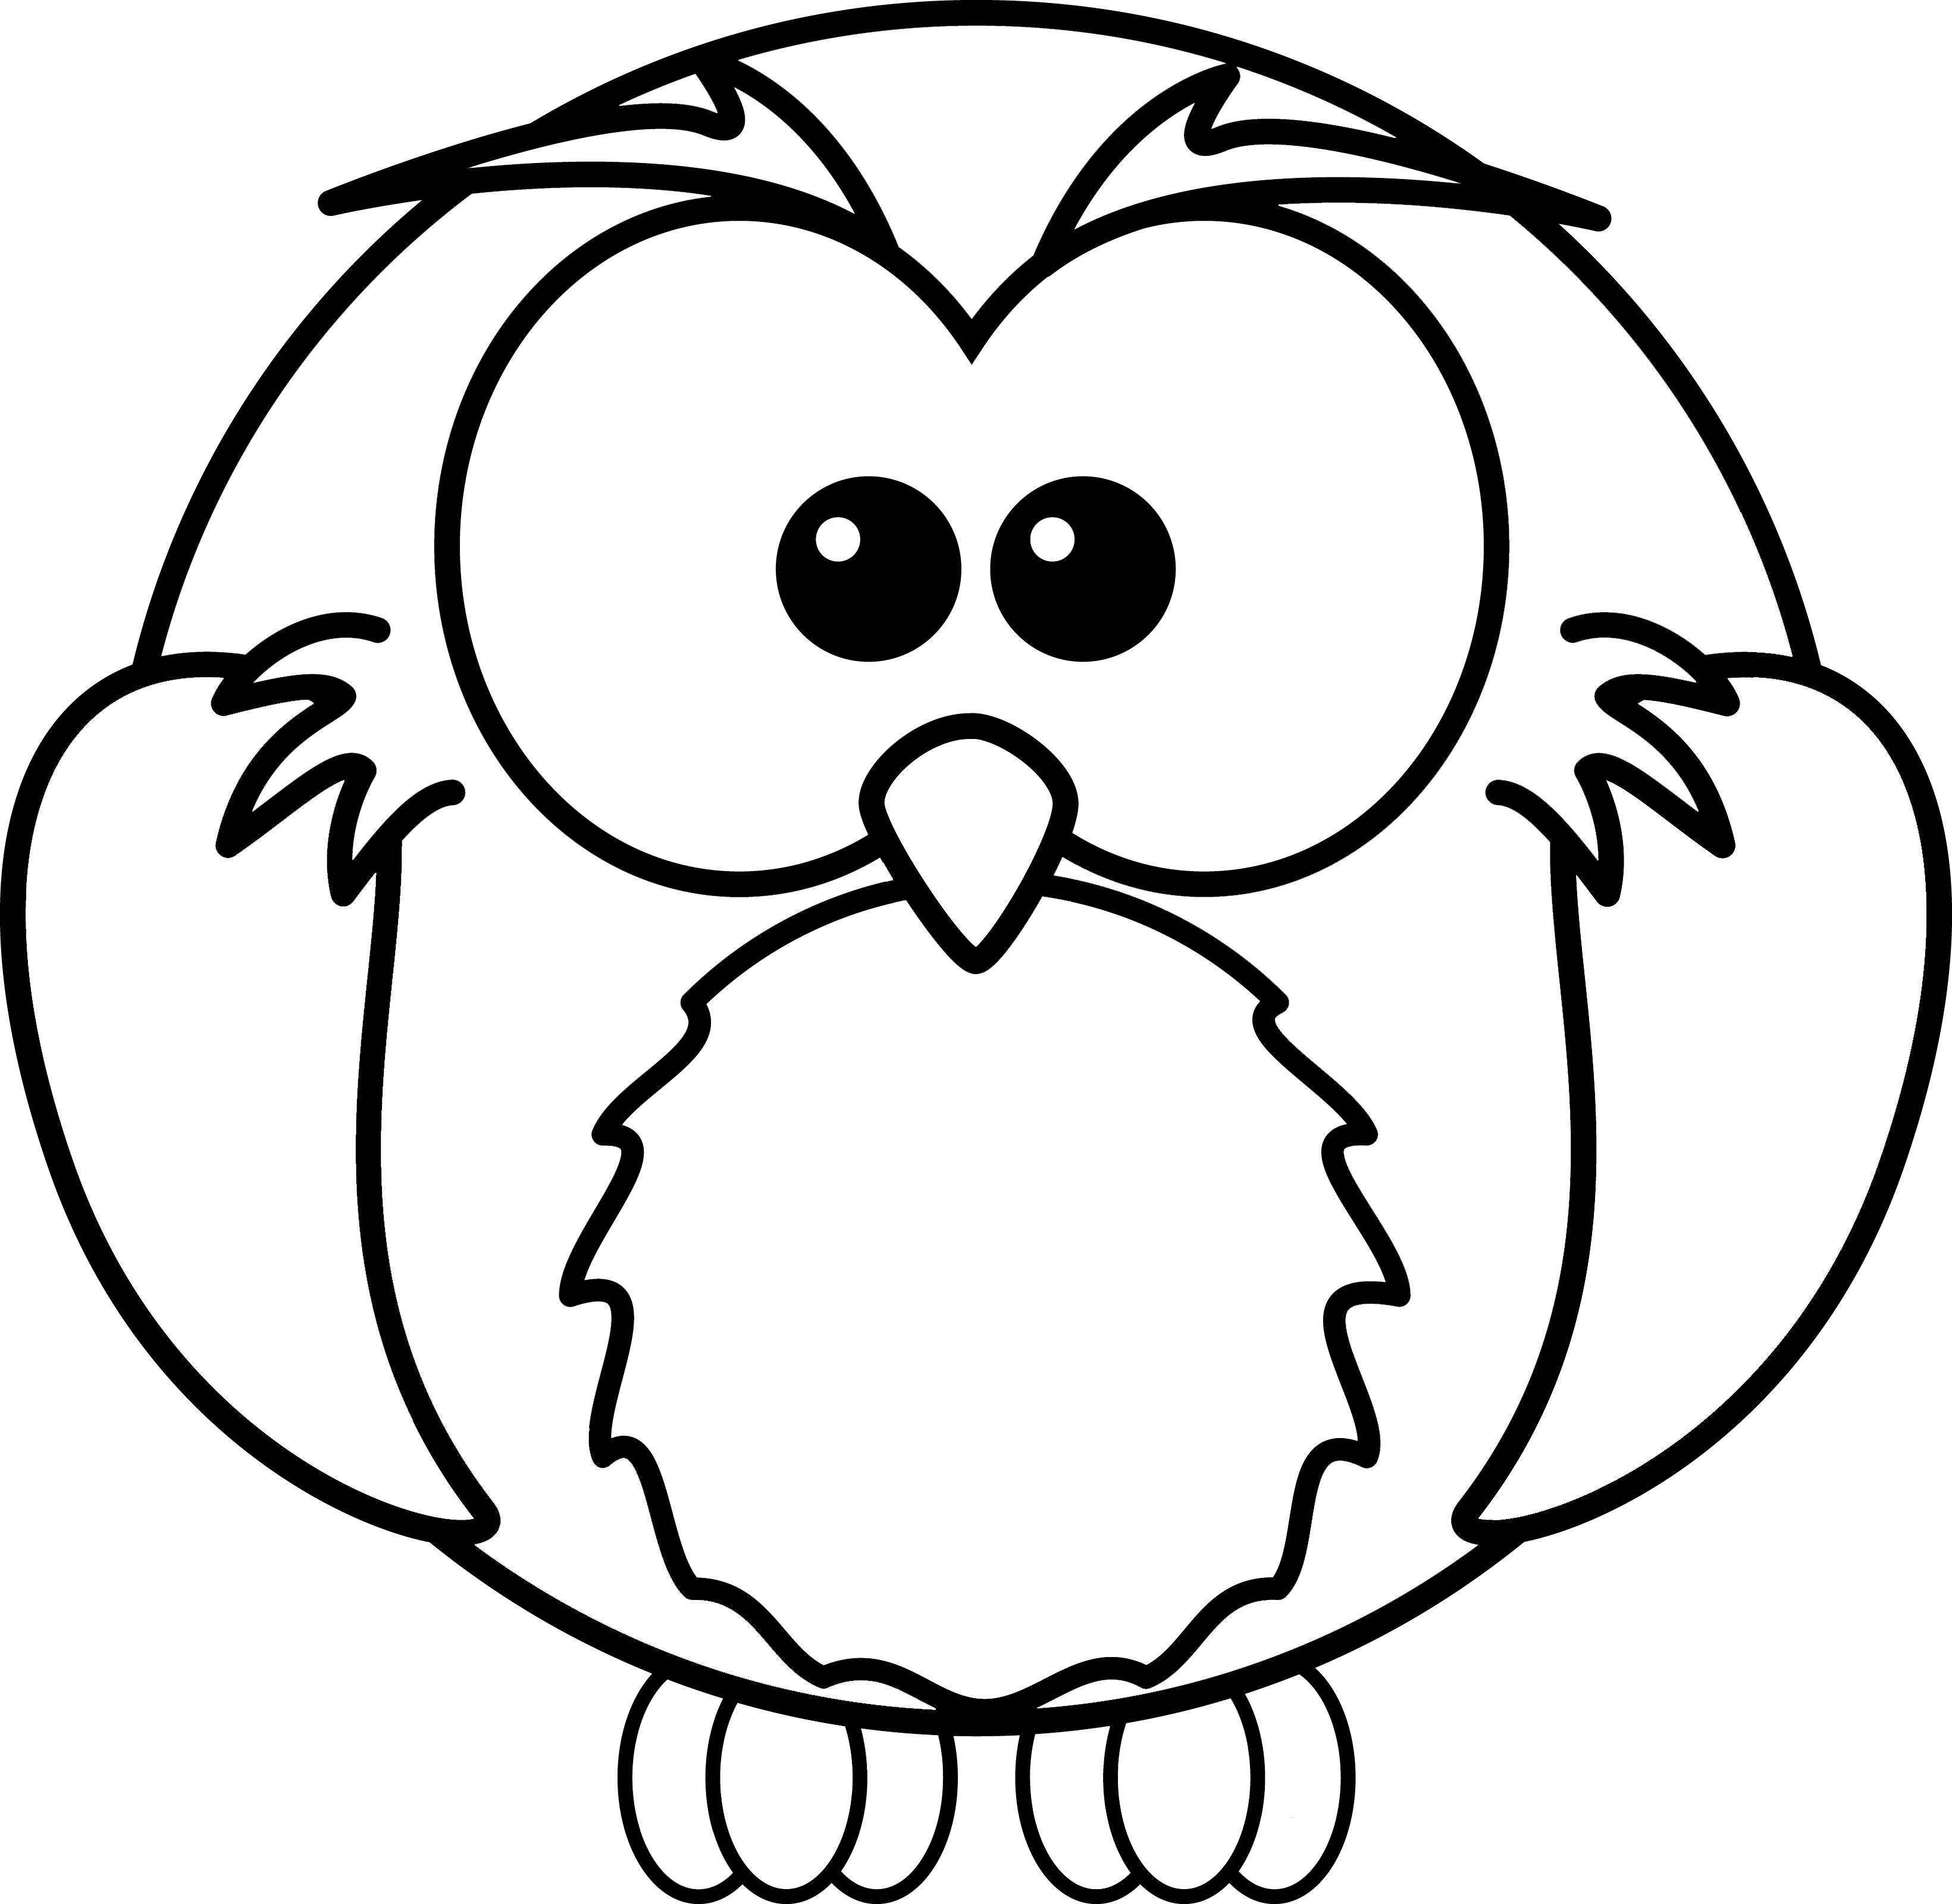 Pin On Owls 3